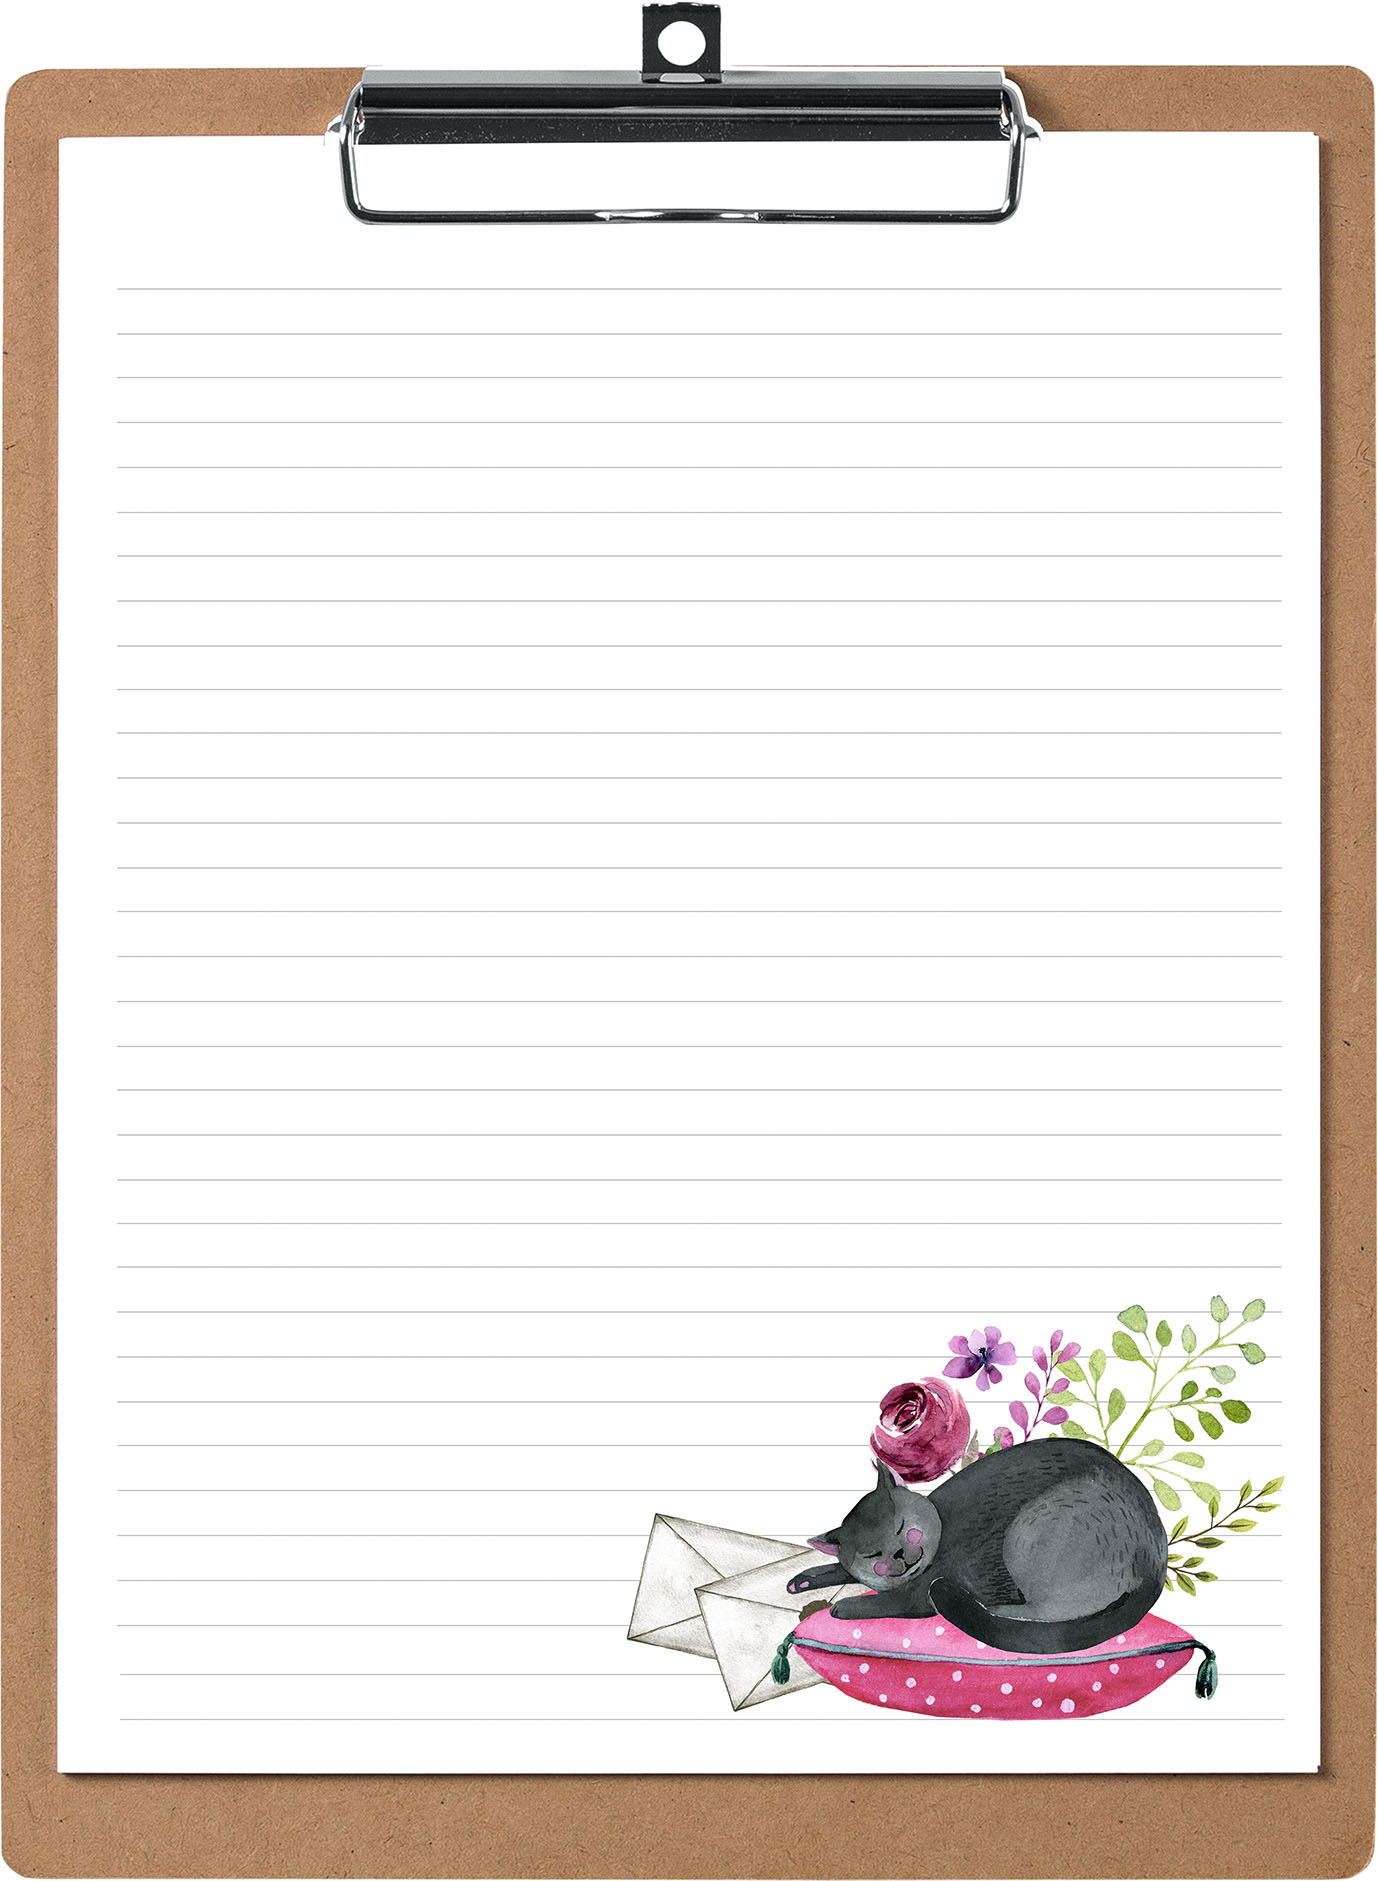 picture about Lined Stationery Printable titled Cat Nap Printable Coated Pen Close friend Stationery 8.5 x 11 Snail Deliver